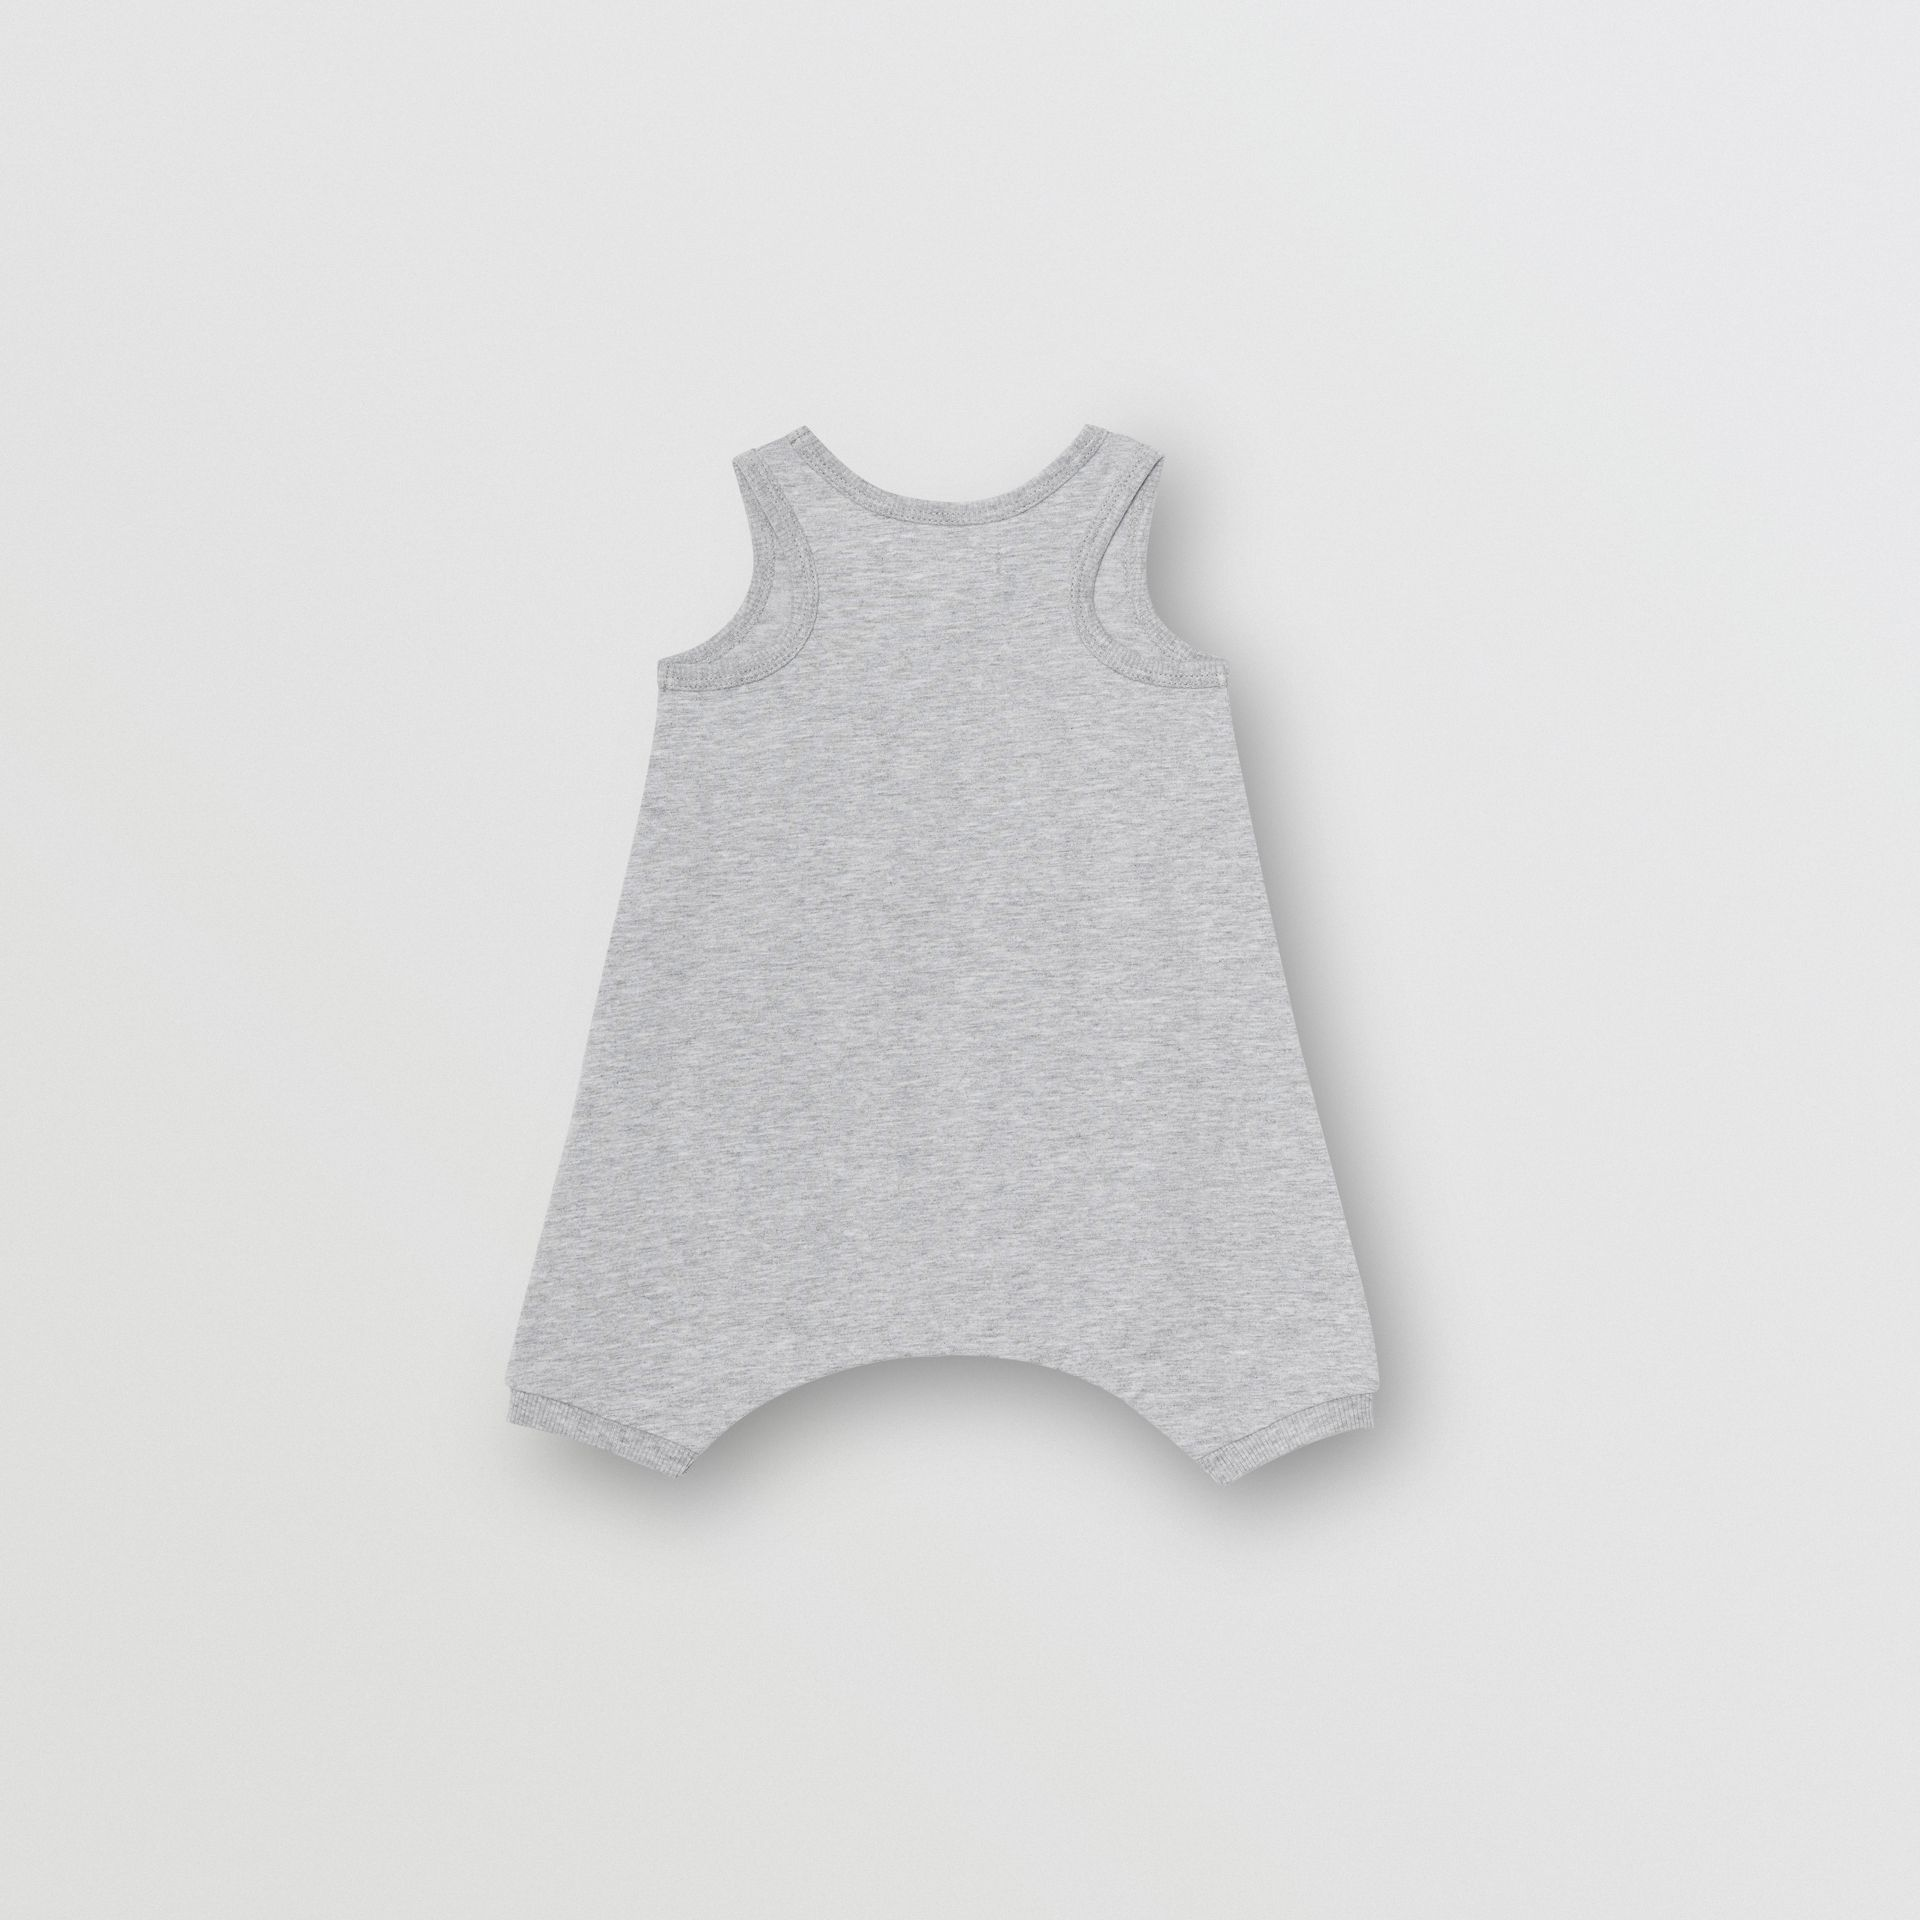 Logo Print Cotton Three-piece Baby Gift Set in Grey - Children | Burberry United Kingdom - gallery image 3